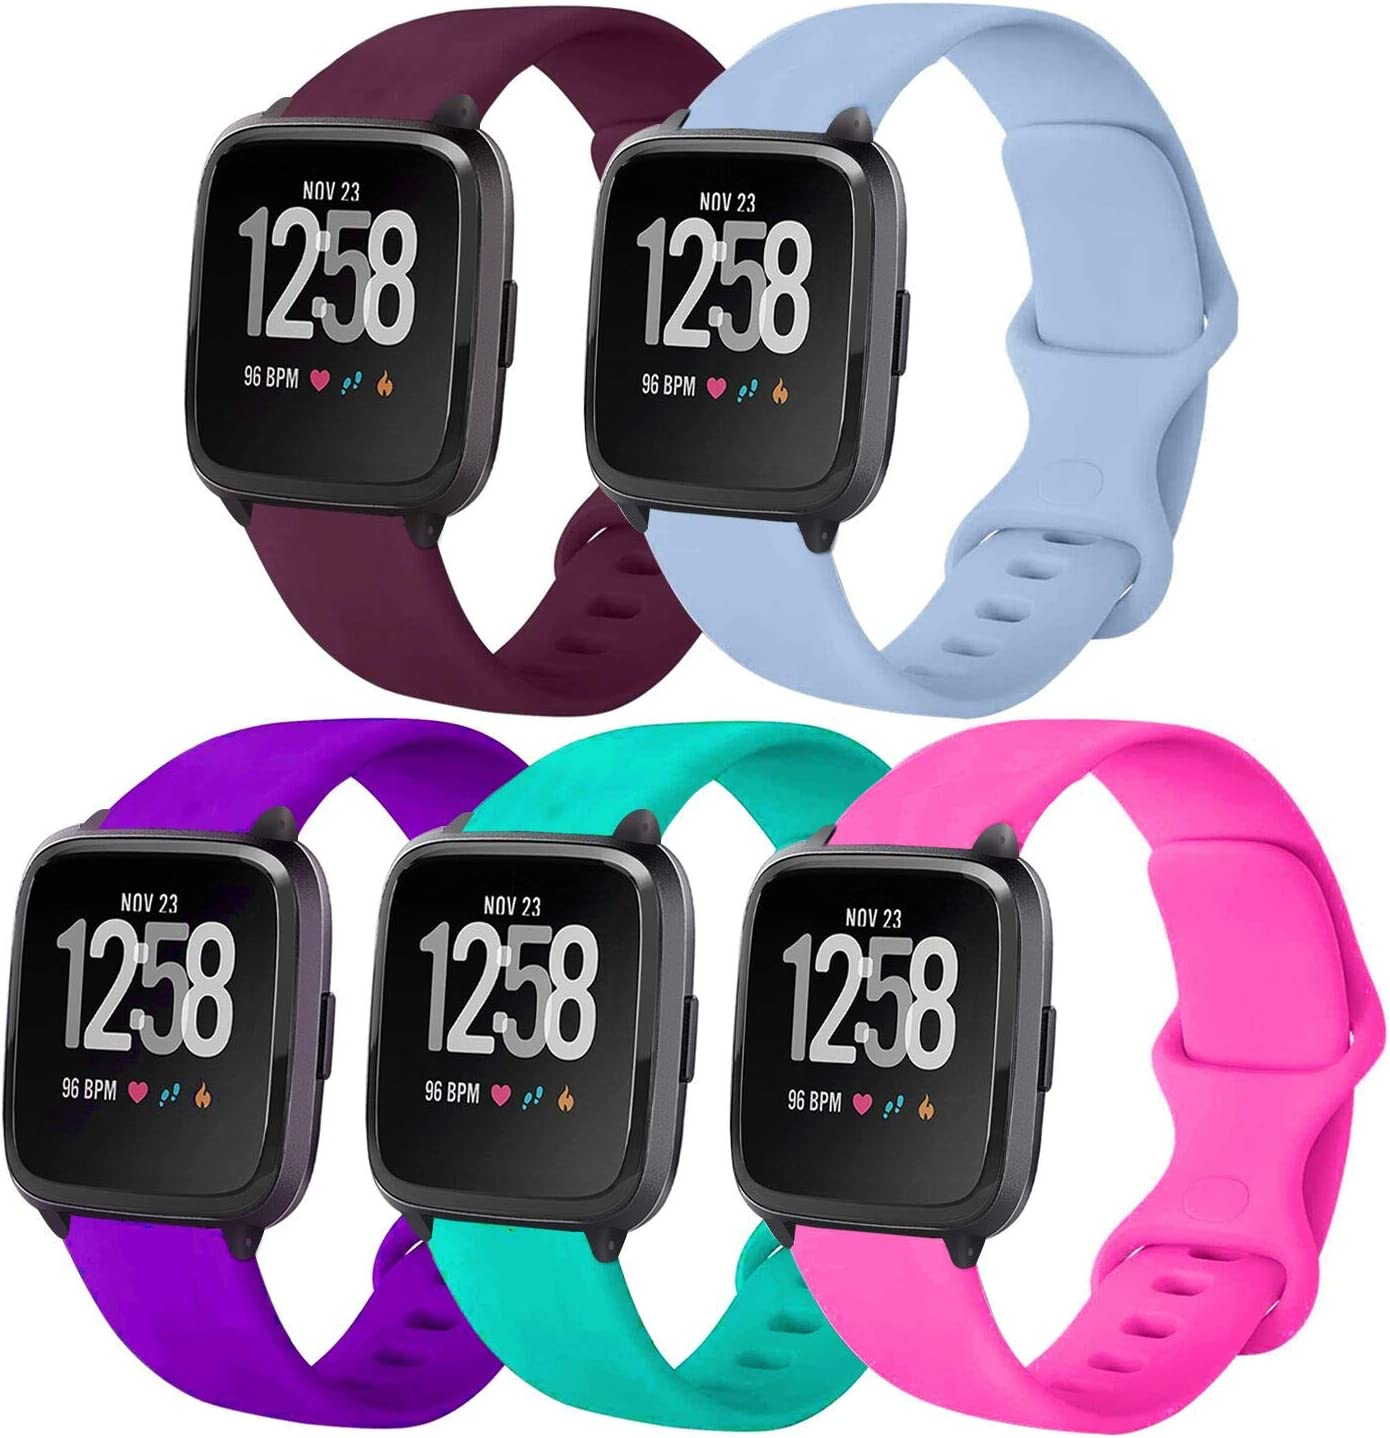 5 Pack Sport Band Compatible with Watch 38mm 40mm Bands, Silicone Replacement Strap Women Men for Watch Series SE 6 5 4 3 2 1 - Teal/Plum/Purple/Bright Pink/Light Blue, 38mm 40mm S/M